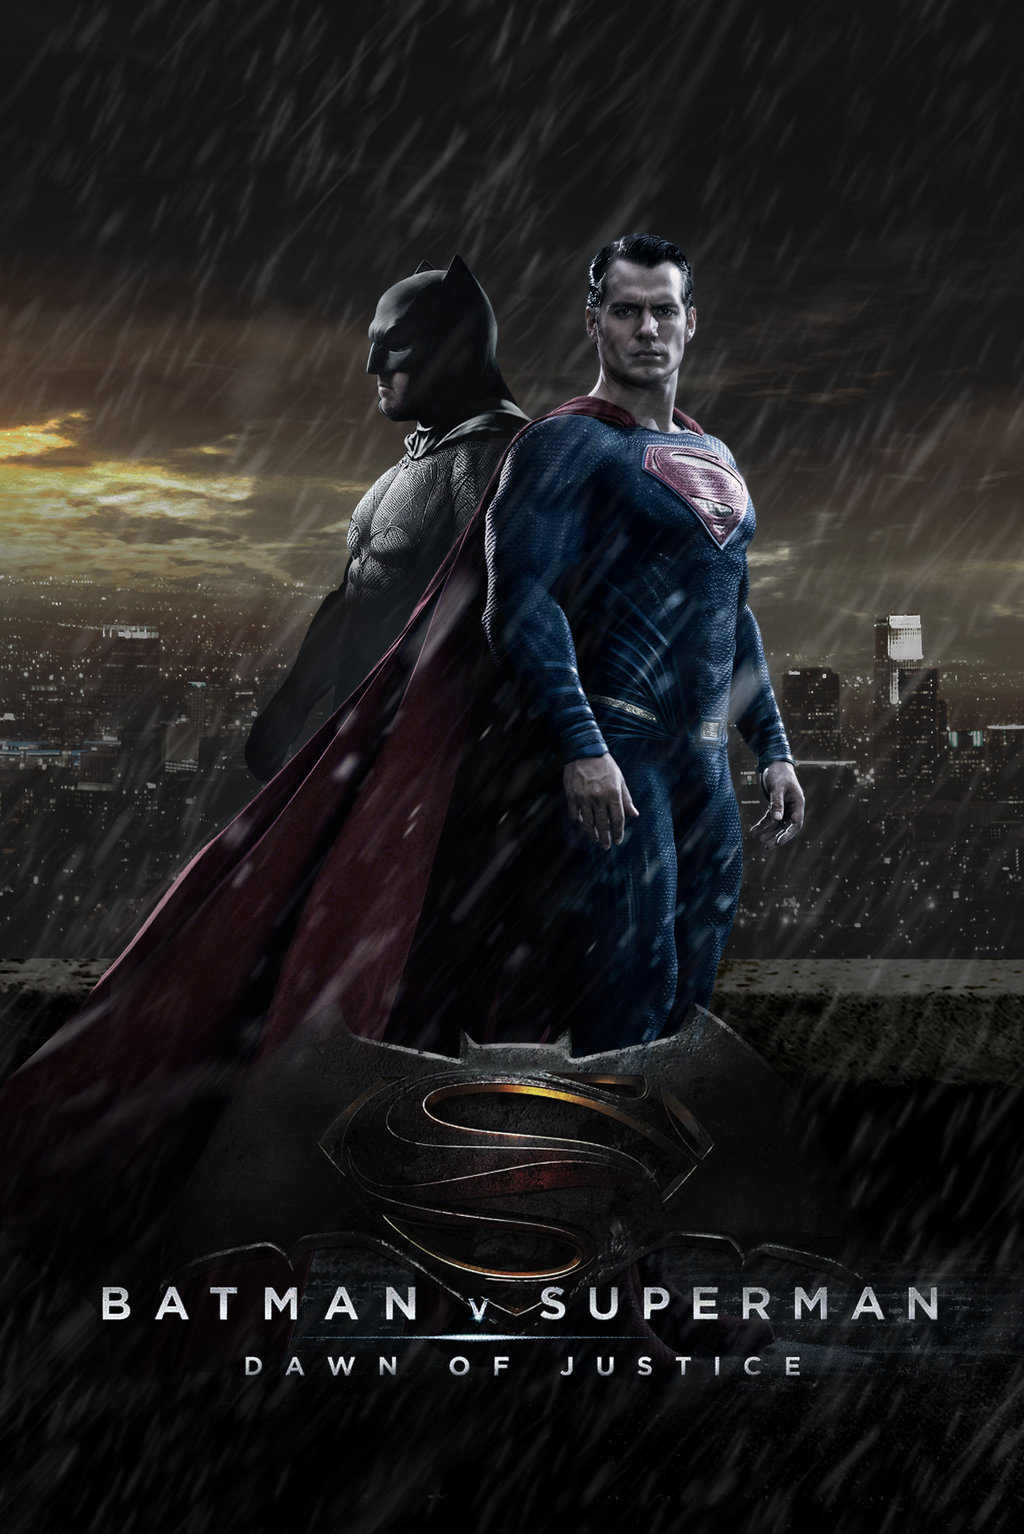 Superman Wallpaper Wallpapers Browse